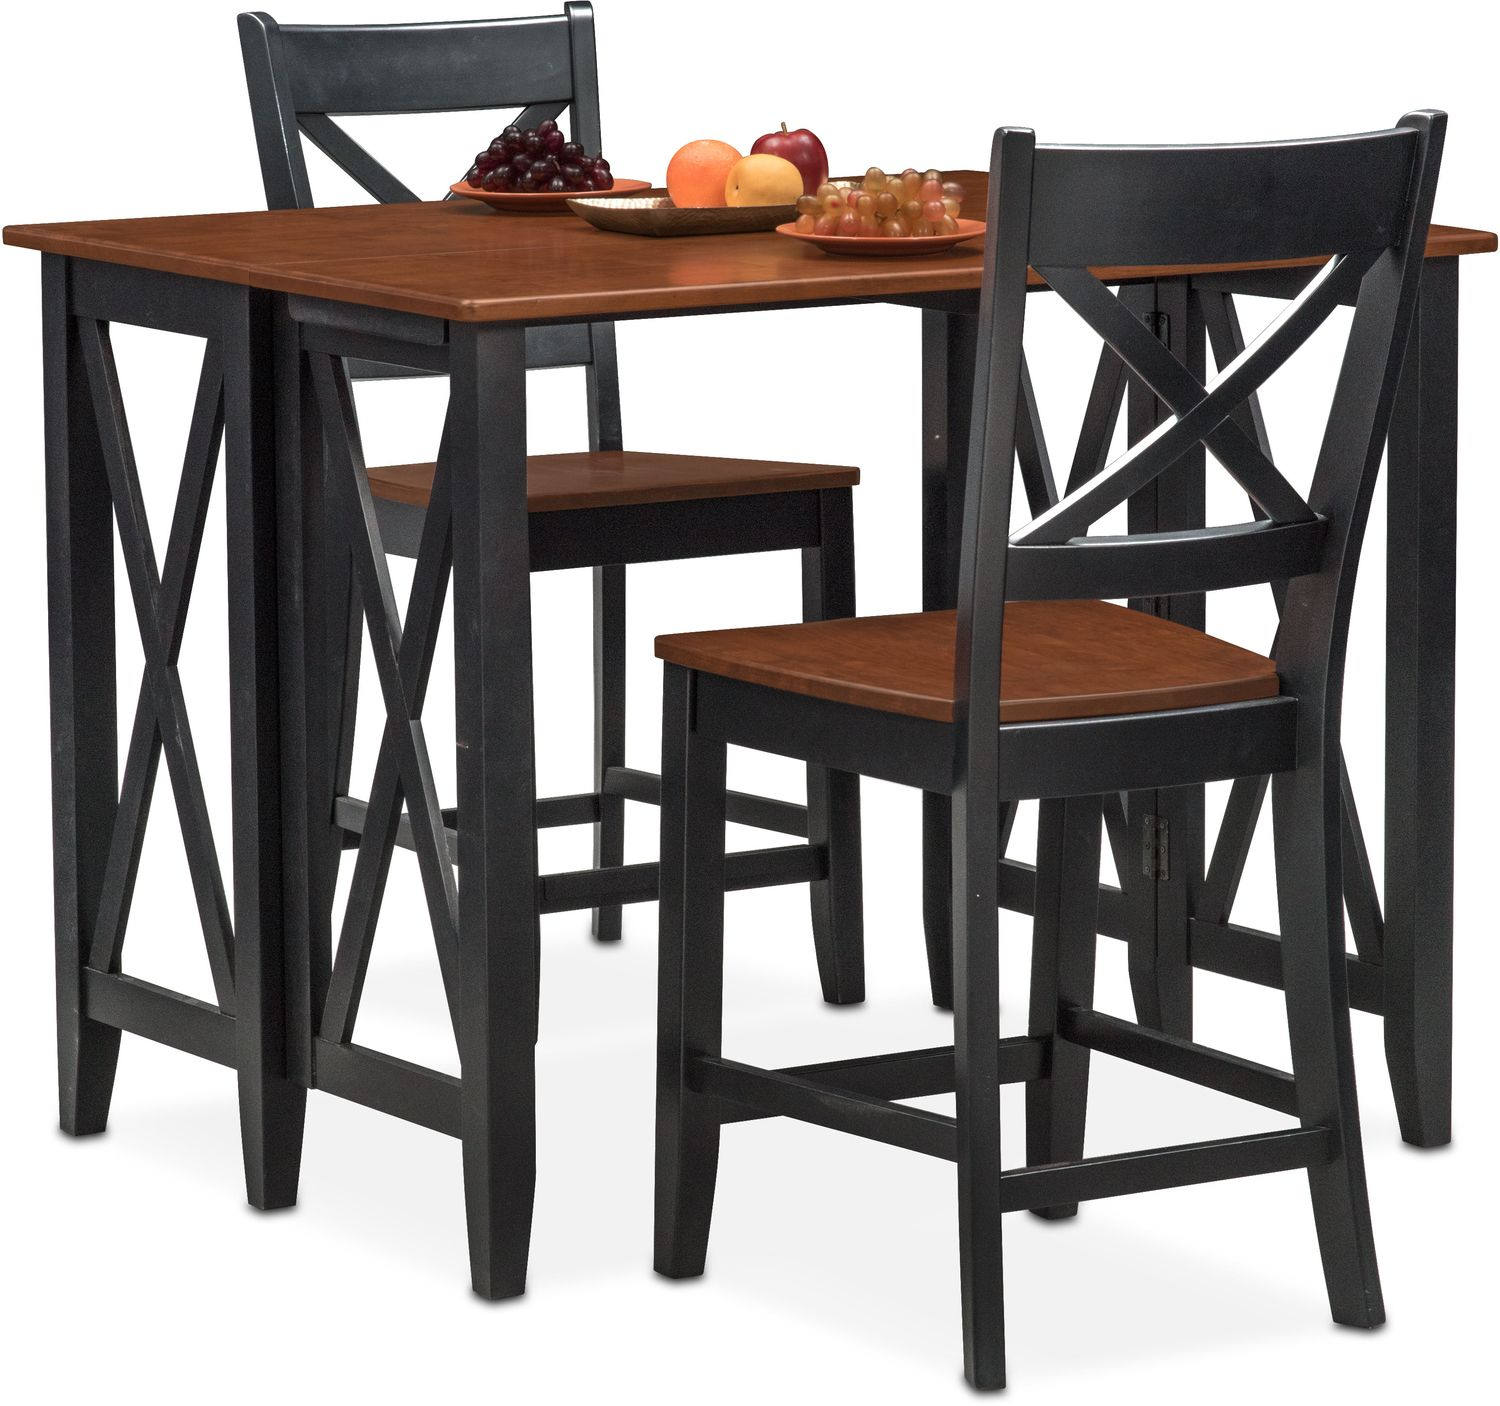 $389.97 Nantucket Breakfast Bar And 2 Counter Height Side Chairs   Black  And Cherry